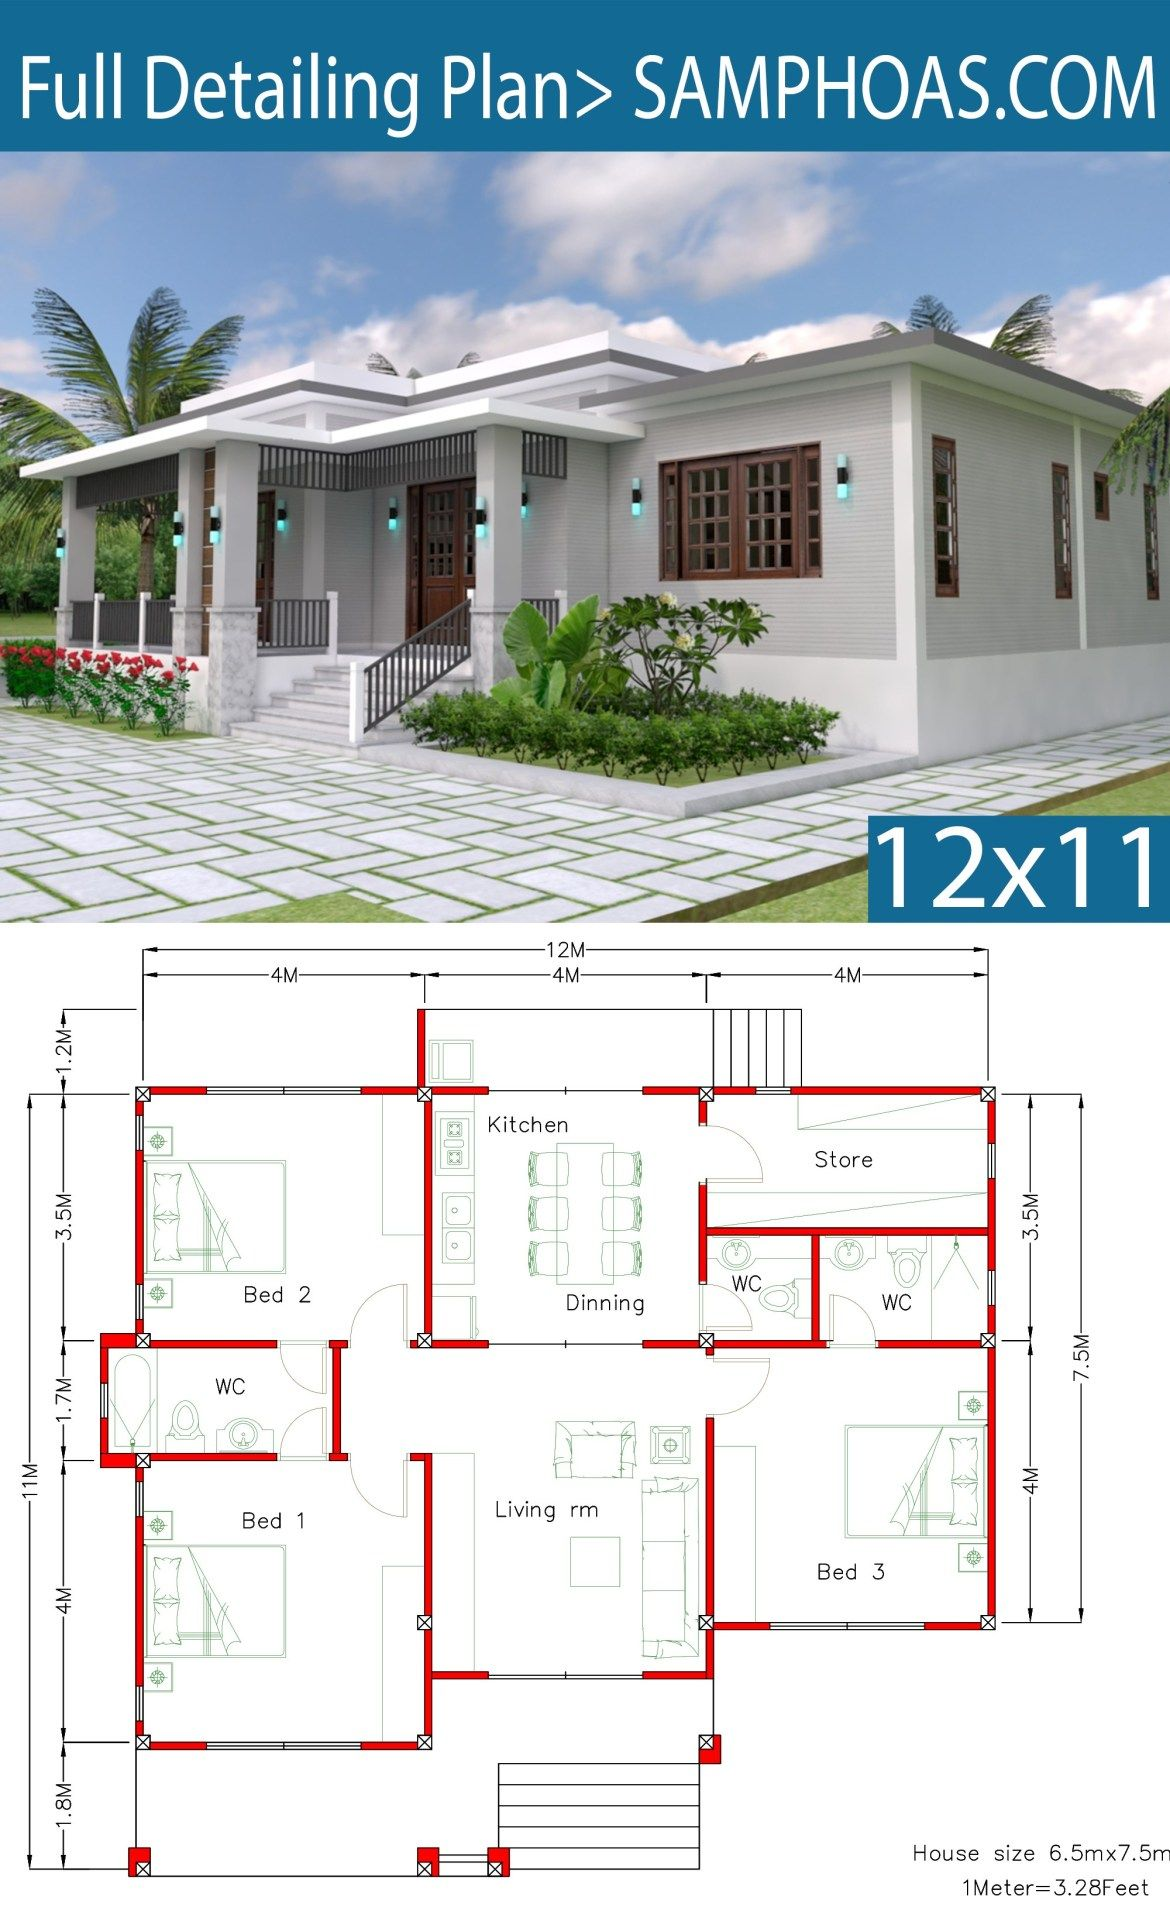 House Design With Full Plan 12x11m 3 Bedrooms Samphoas Plansearch Bungalow House Plans House Plan Gallery Simple House Design